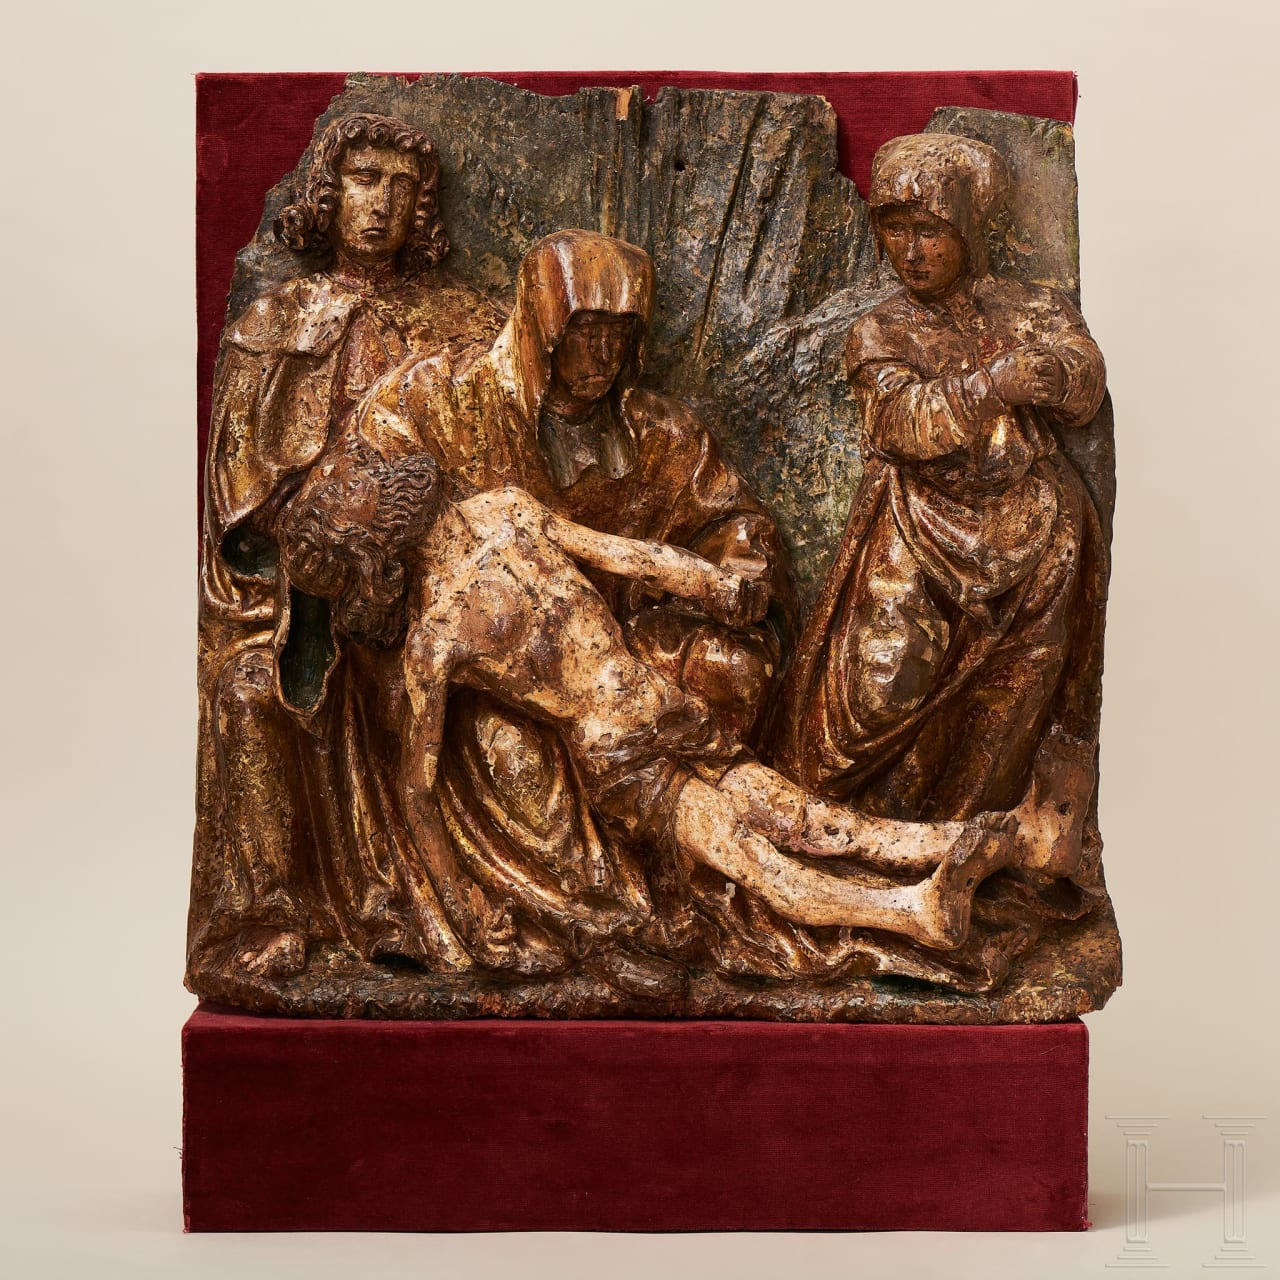 A Flemish carved relief panel showing the lamentation of Christ, late 15th century